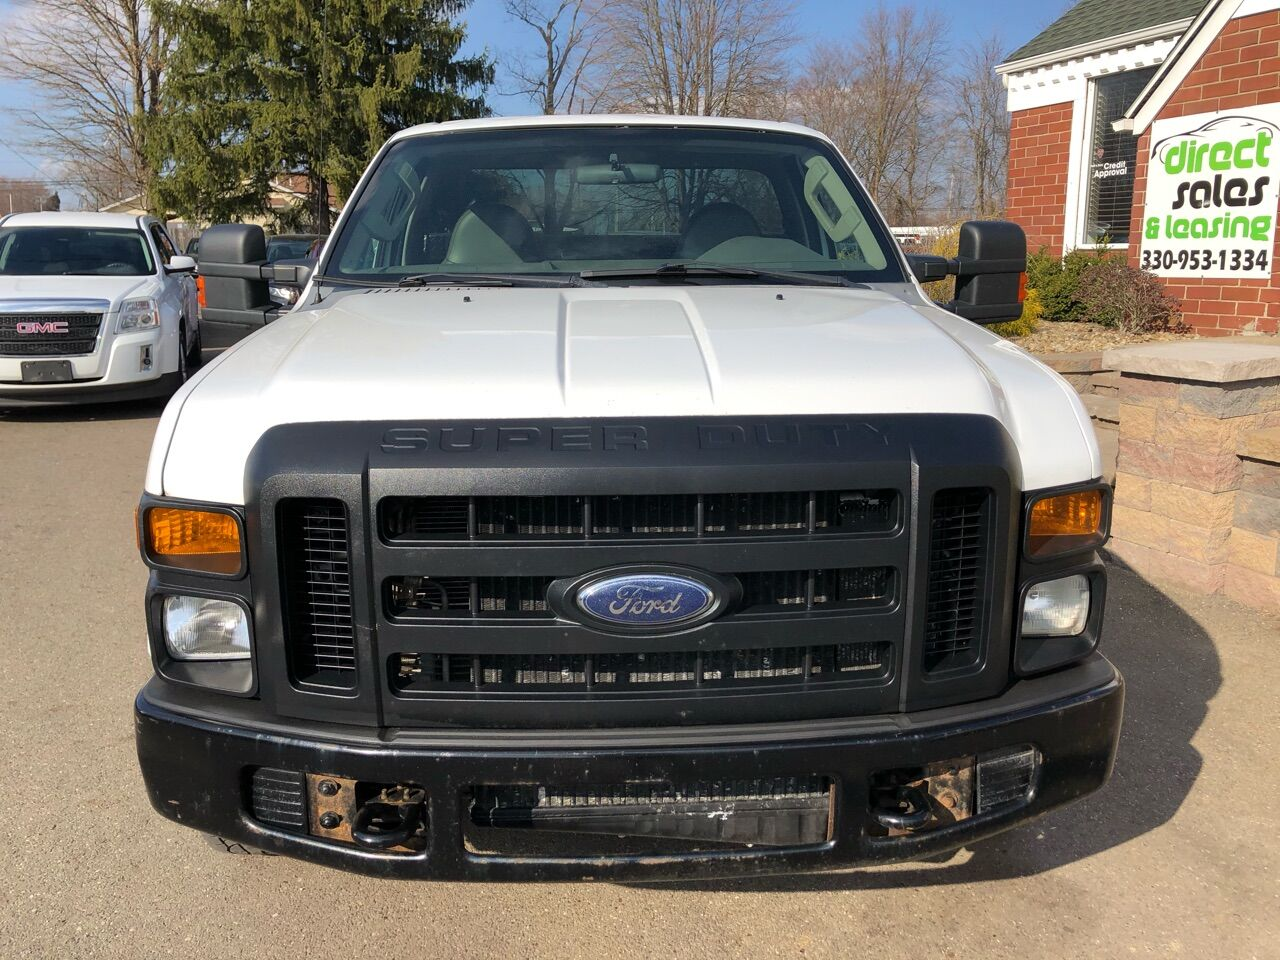 2009 Ford F-350 Super Duty Long Bed